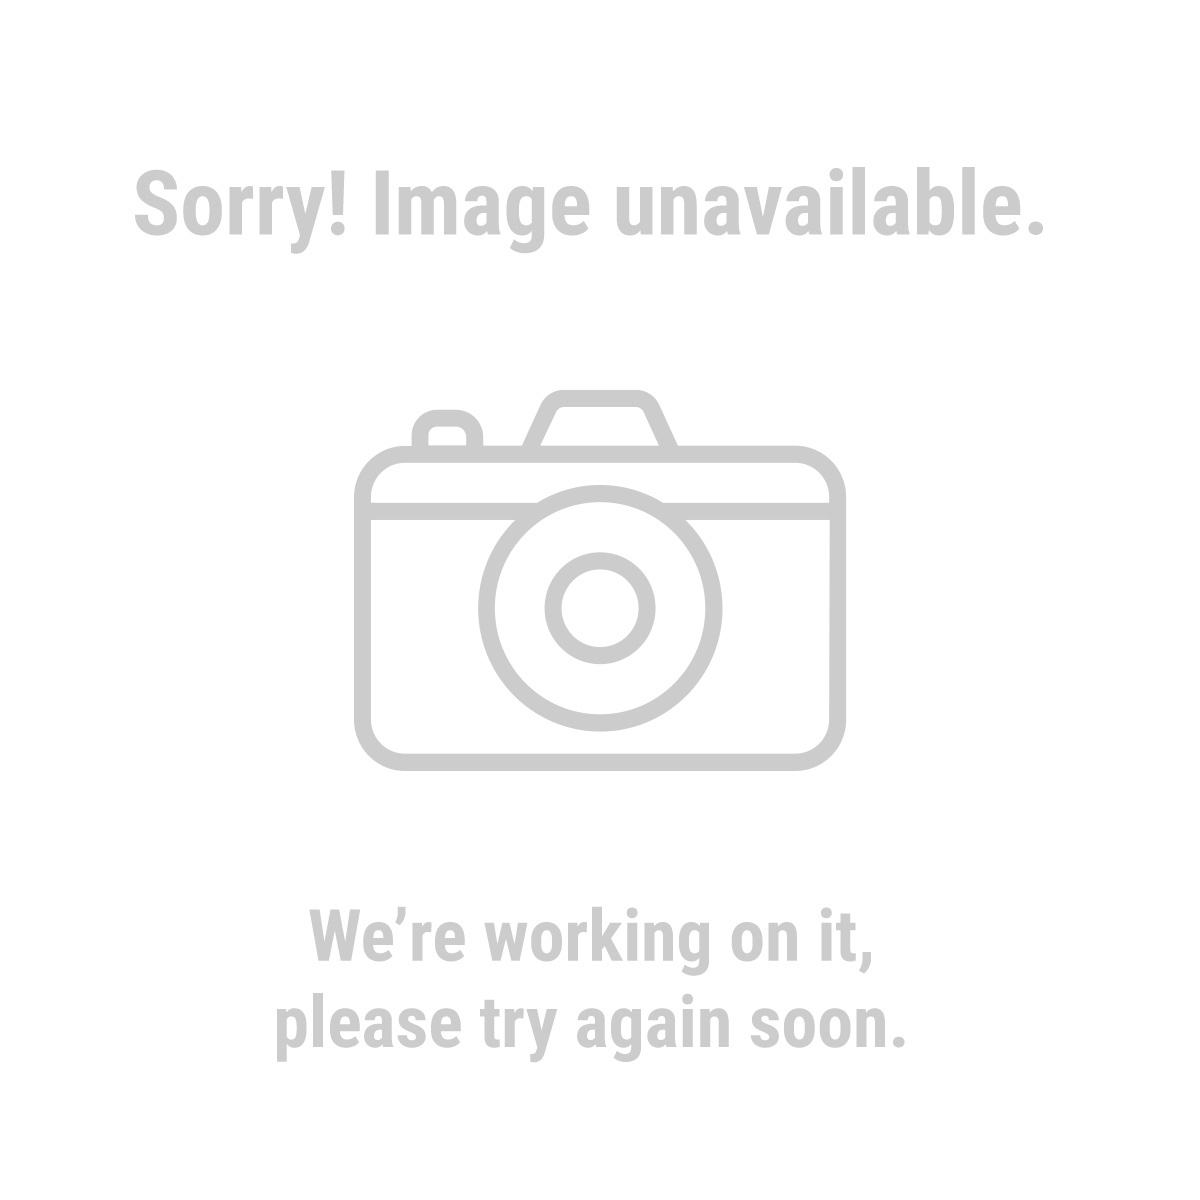 HFT 93715 4 Pc Storm-Proof Wheel Covers